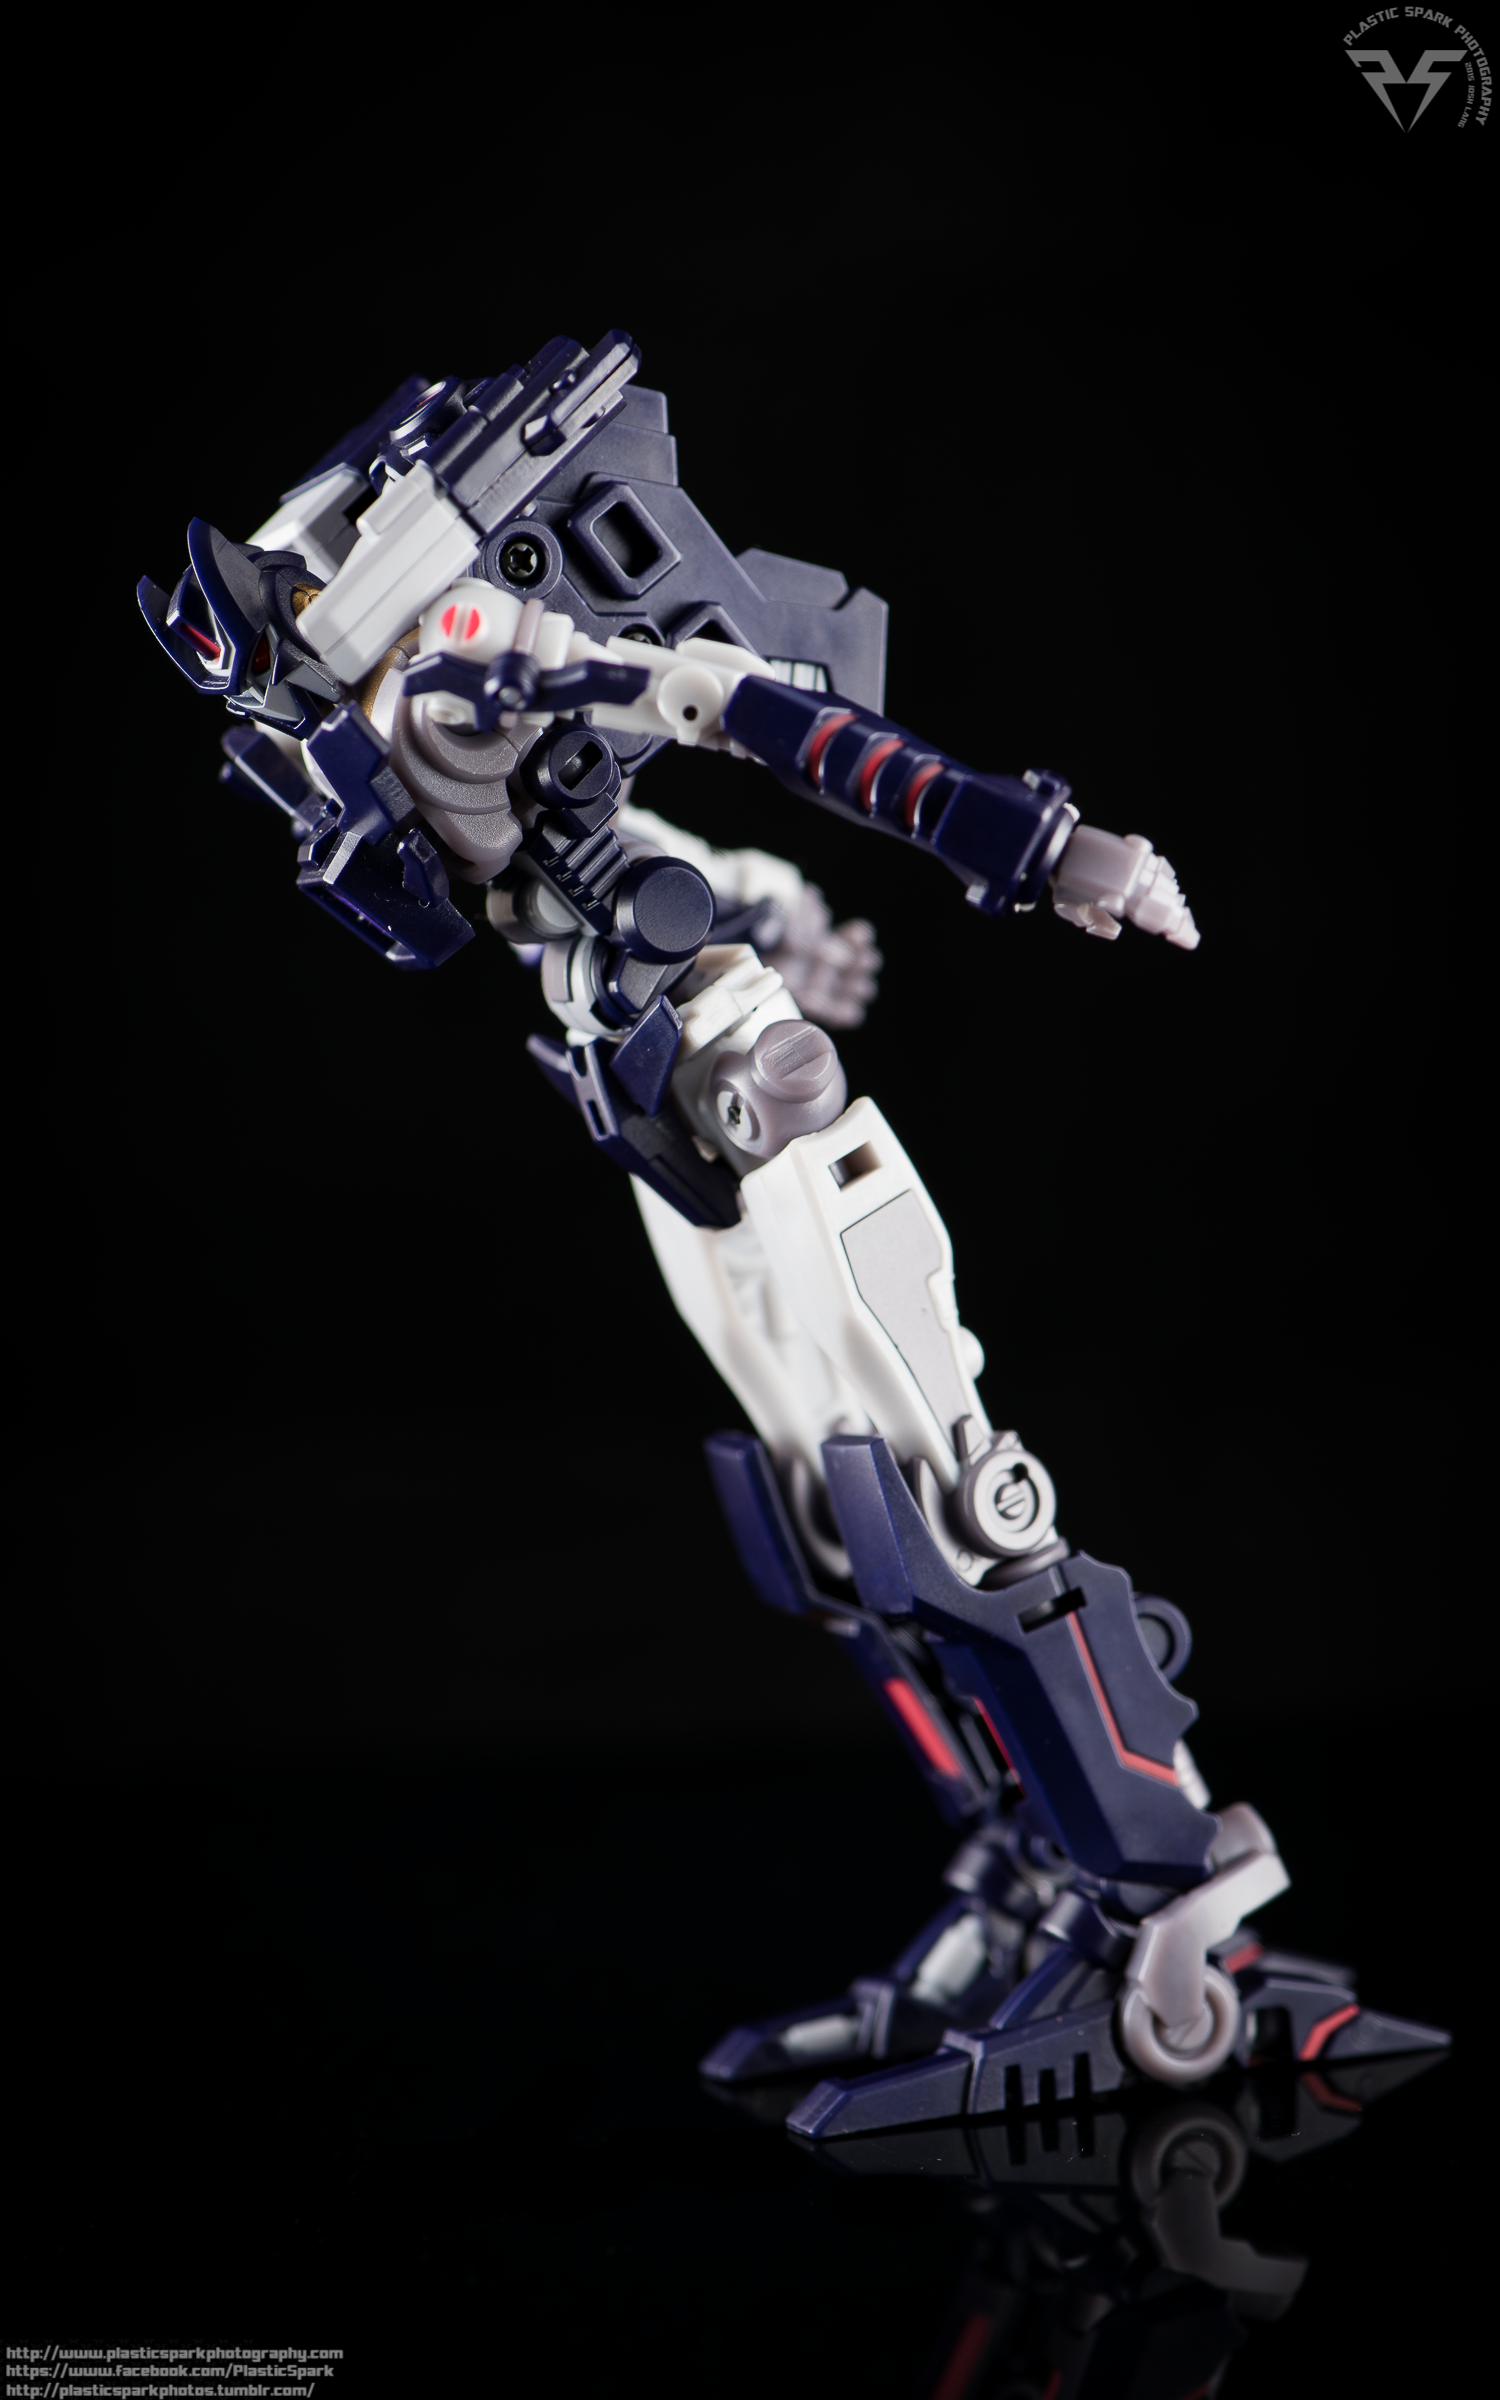 Mastermind-Creations-Cynicus-(6-of-21).png